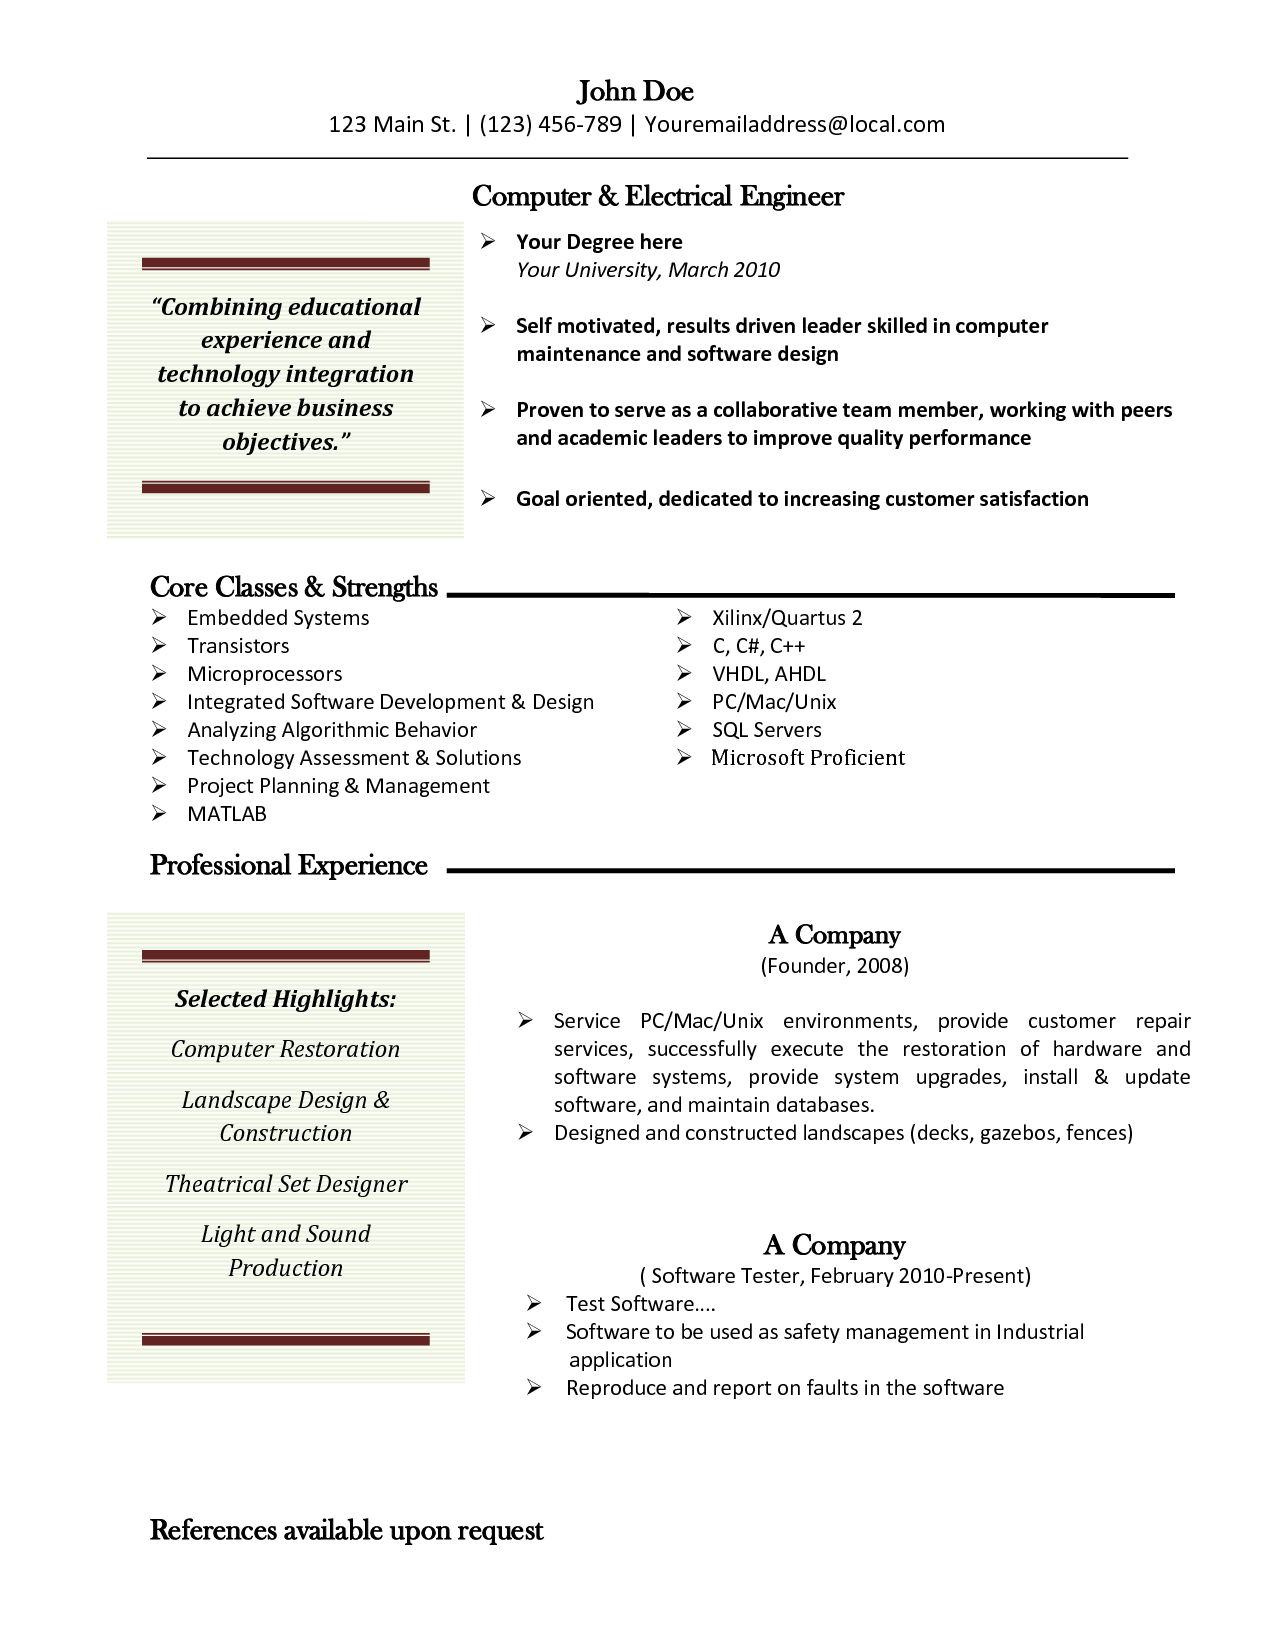 free-resume-templates-for-mac-cqjykibi.png (1275×1650) | cv | Pinterest